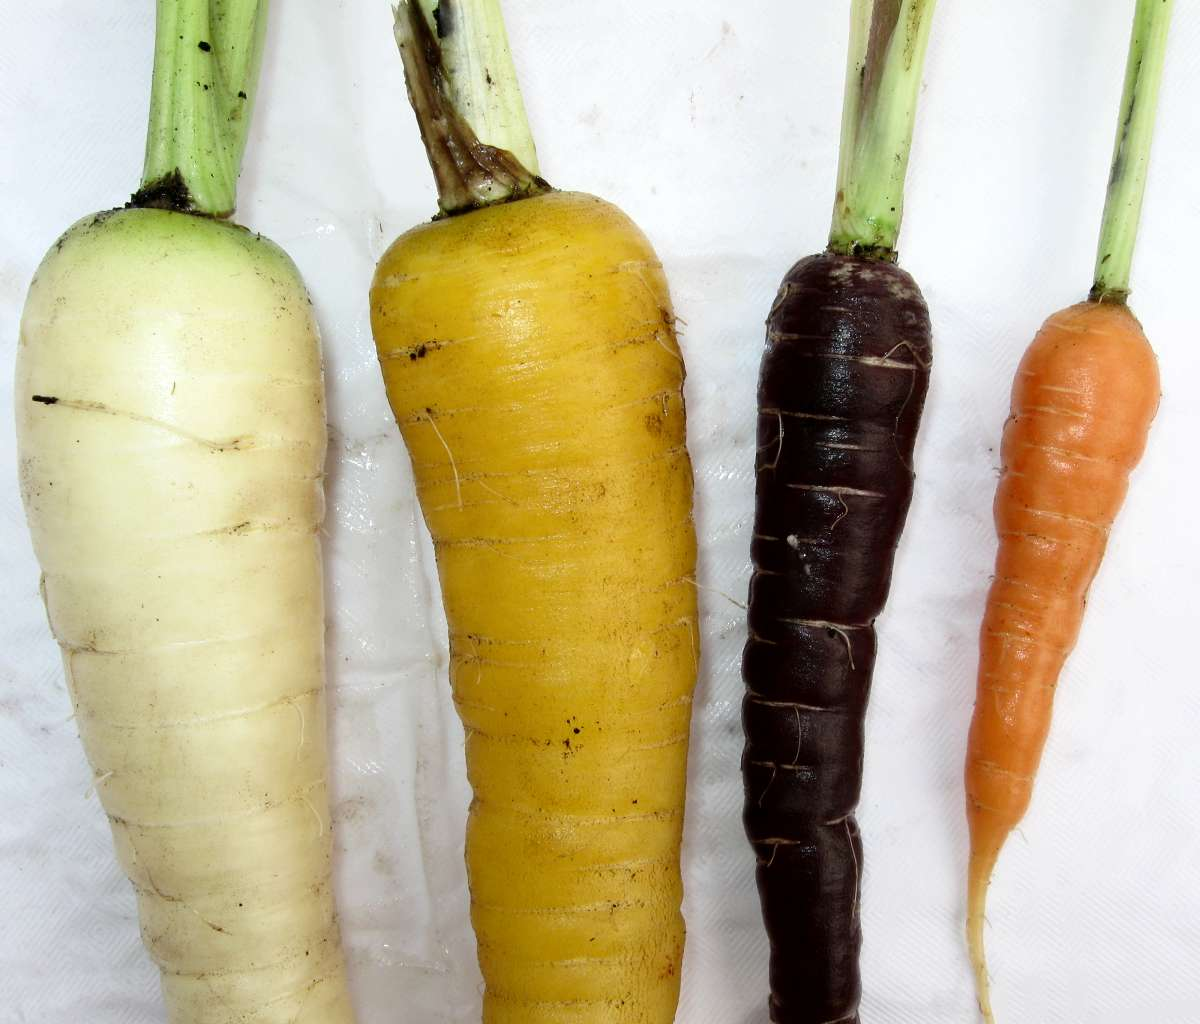 The Carrot Museum's Coloured carrots - 2008